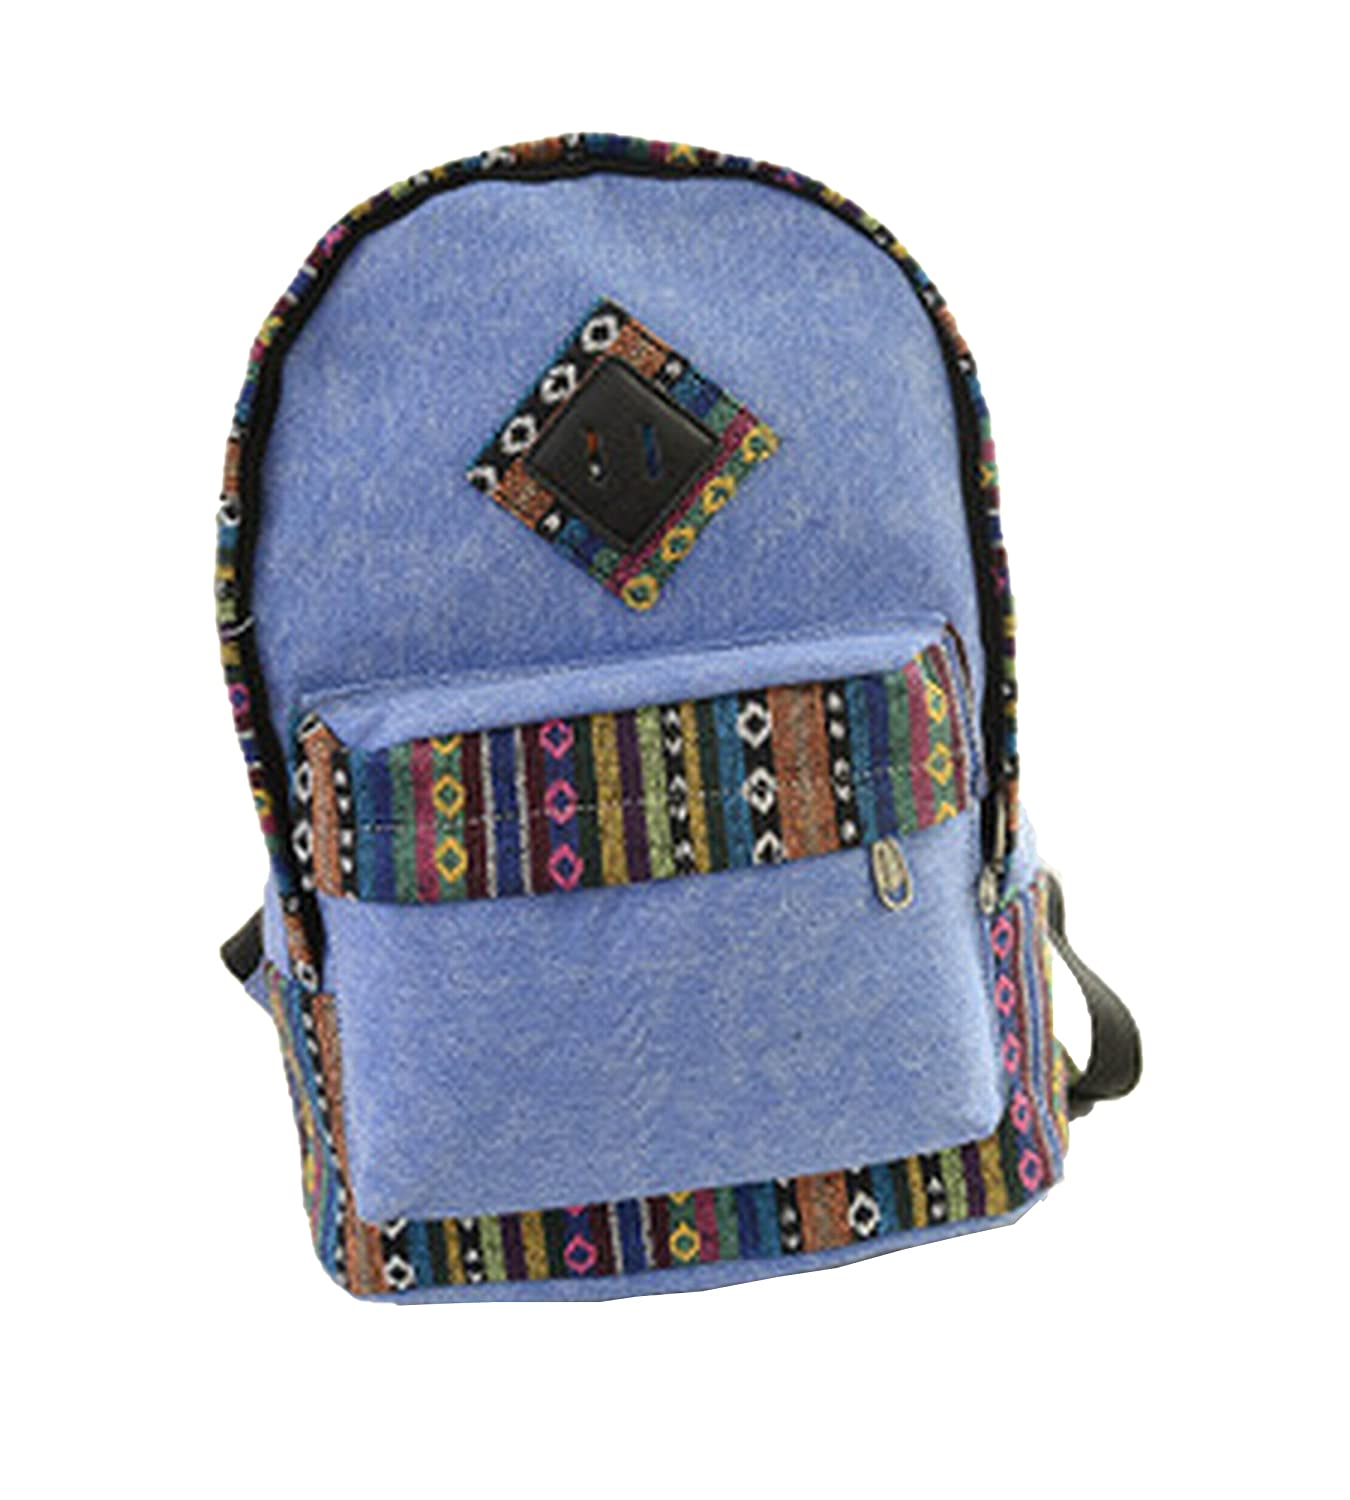 bluee Weilong College Ethnic wind student bag canvas backpack casual travel bag